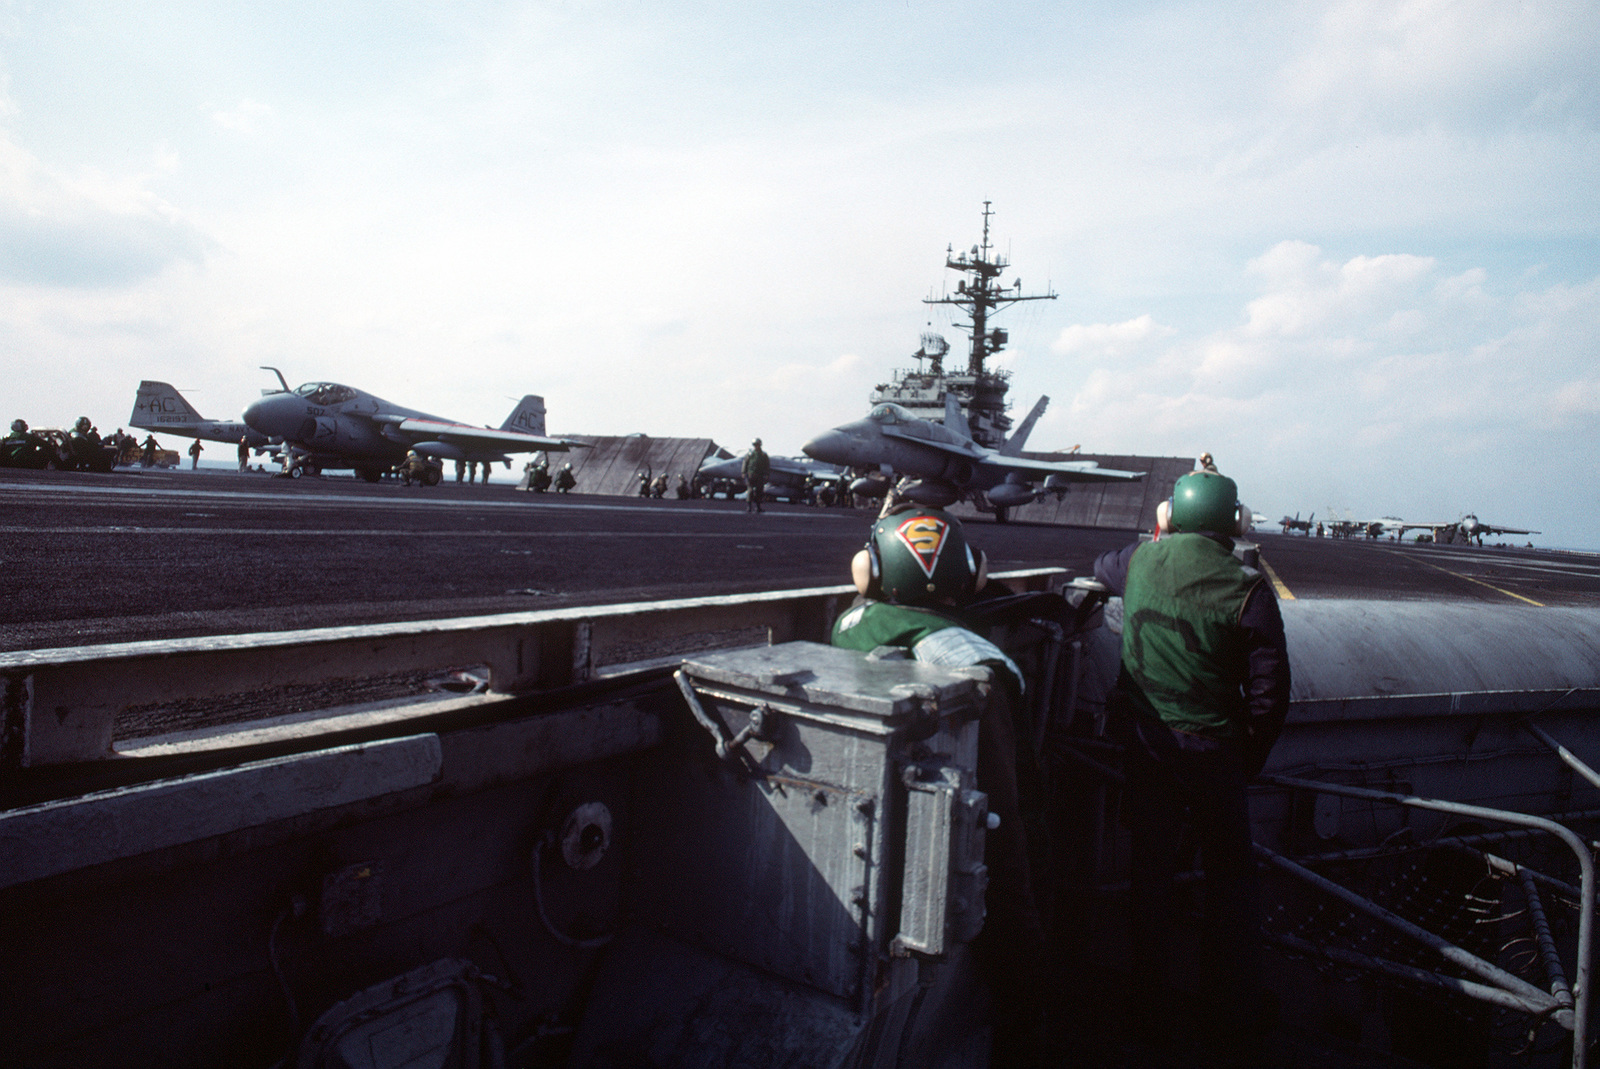 Members of the catapult crew watch from the deck edge operator's station as an A-6E Intruder and an F/A-18C Hornet aircraft are prepared to be launched from the aircraft carrier USS JOHN F. KENNEDY (CV-67)